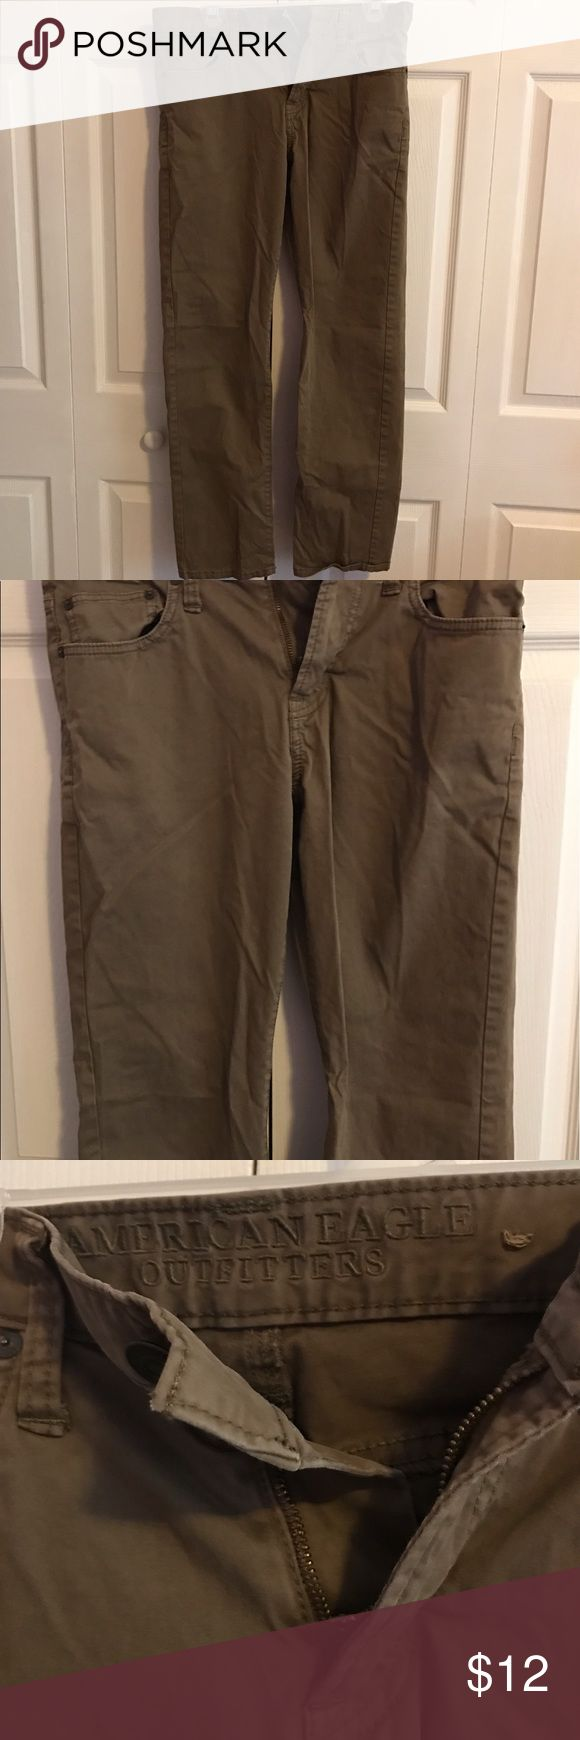 AE Mens Khaki Pants Perfect condition, slim straight style American Eagle Outfitters Pants Chinos & Khakis